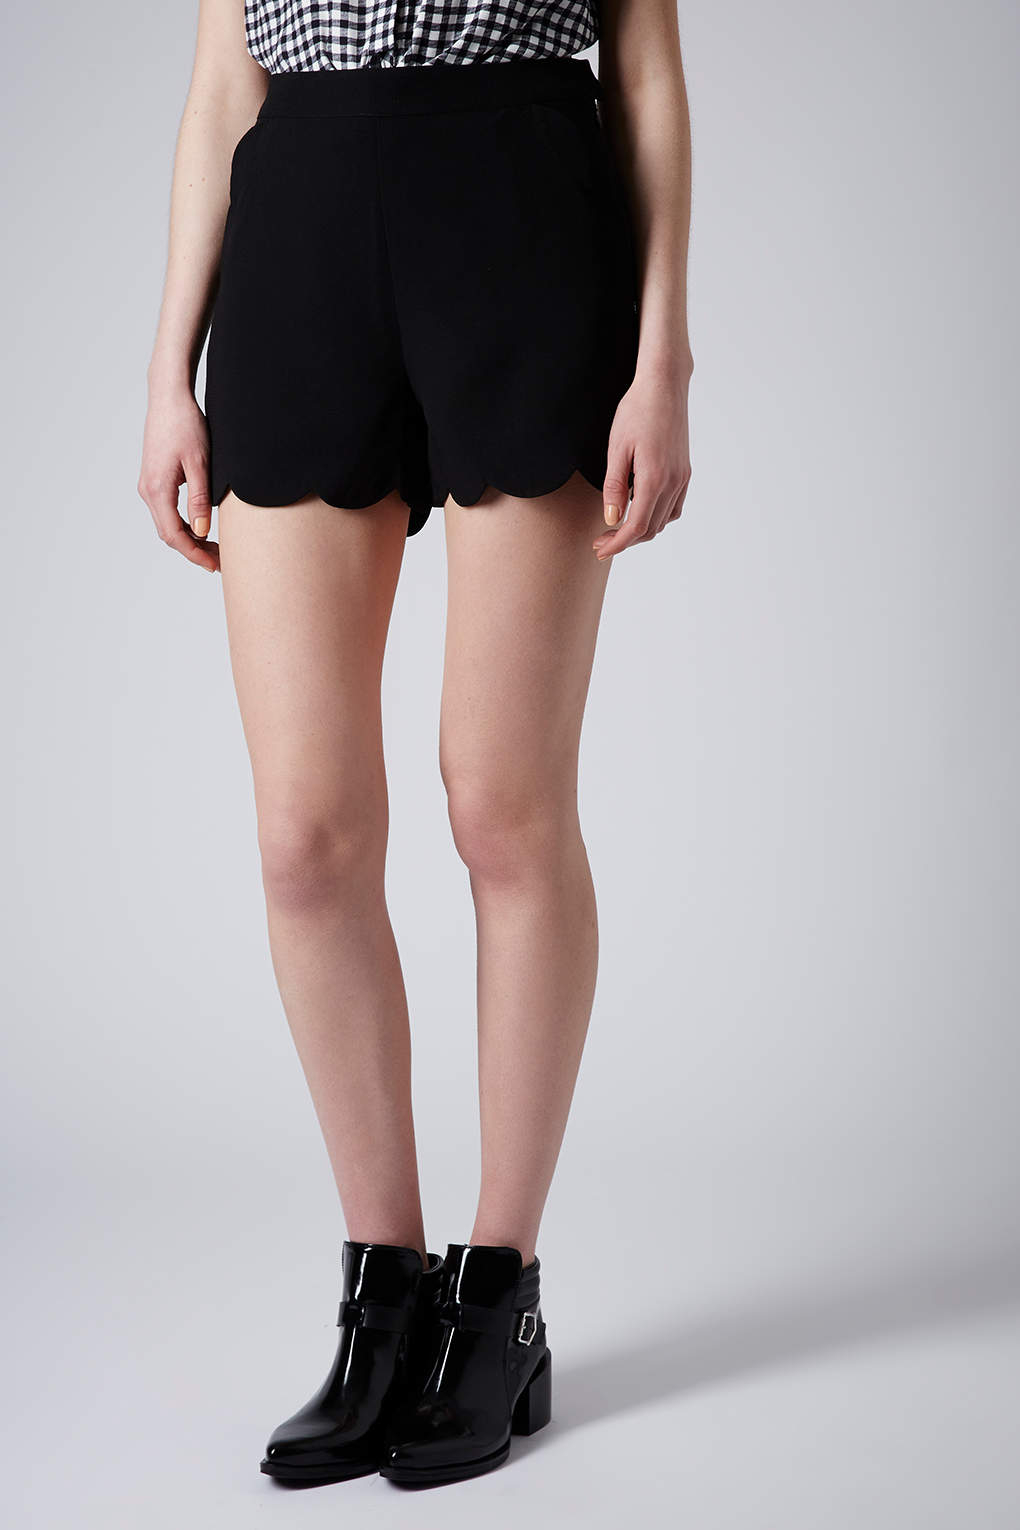 Shop Lucas Scalloped Crepe Shorts, Black from A.L.C. at Bergdorf Goodman, where you'll find free shipping on a fantastic selection of unparalleled designer fashion.